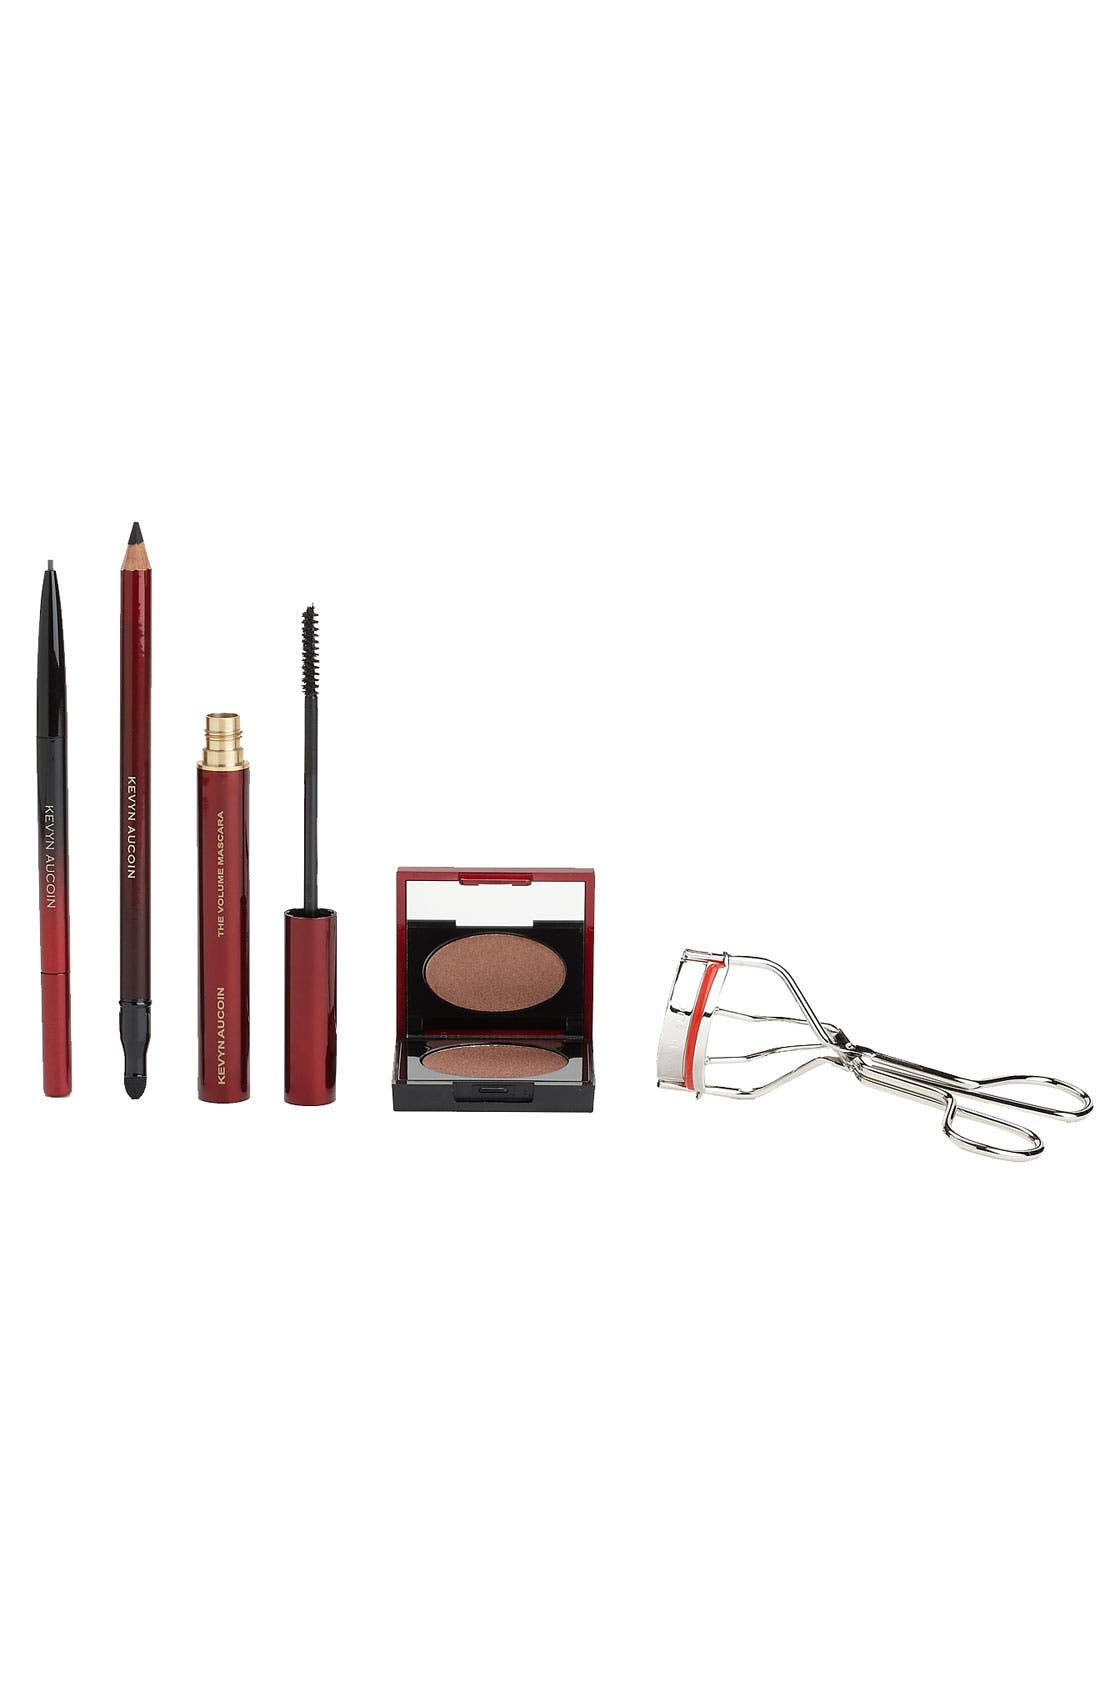 Main Image - Kevyn Aucoin Beauty 'Best Of' Kit ($121 Value)